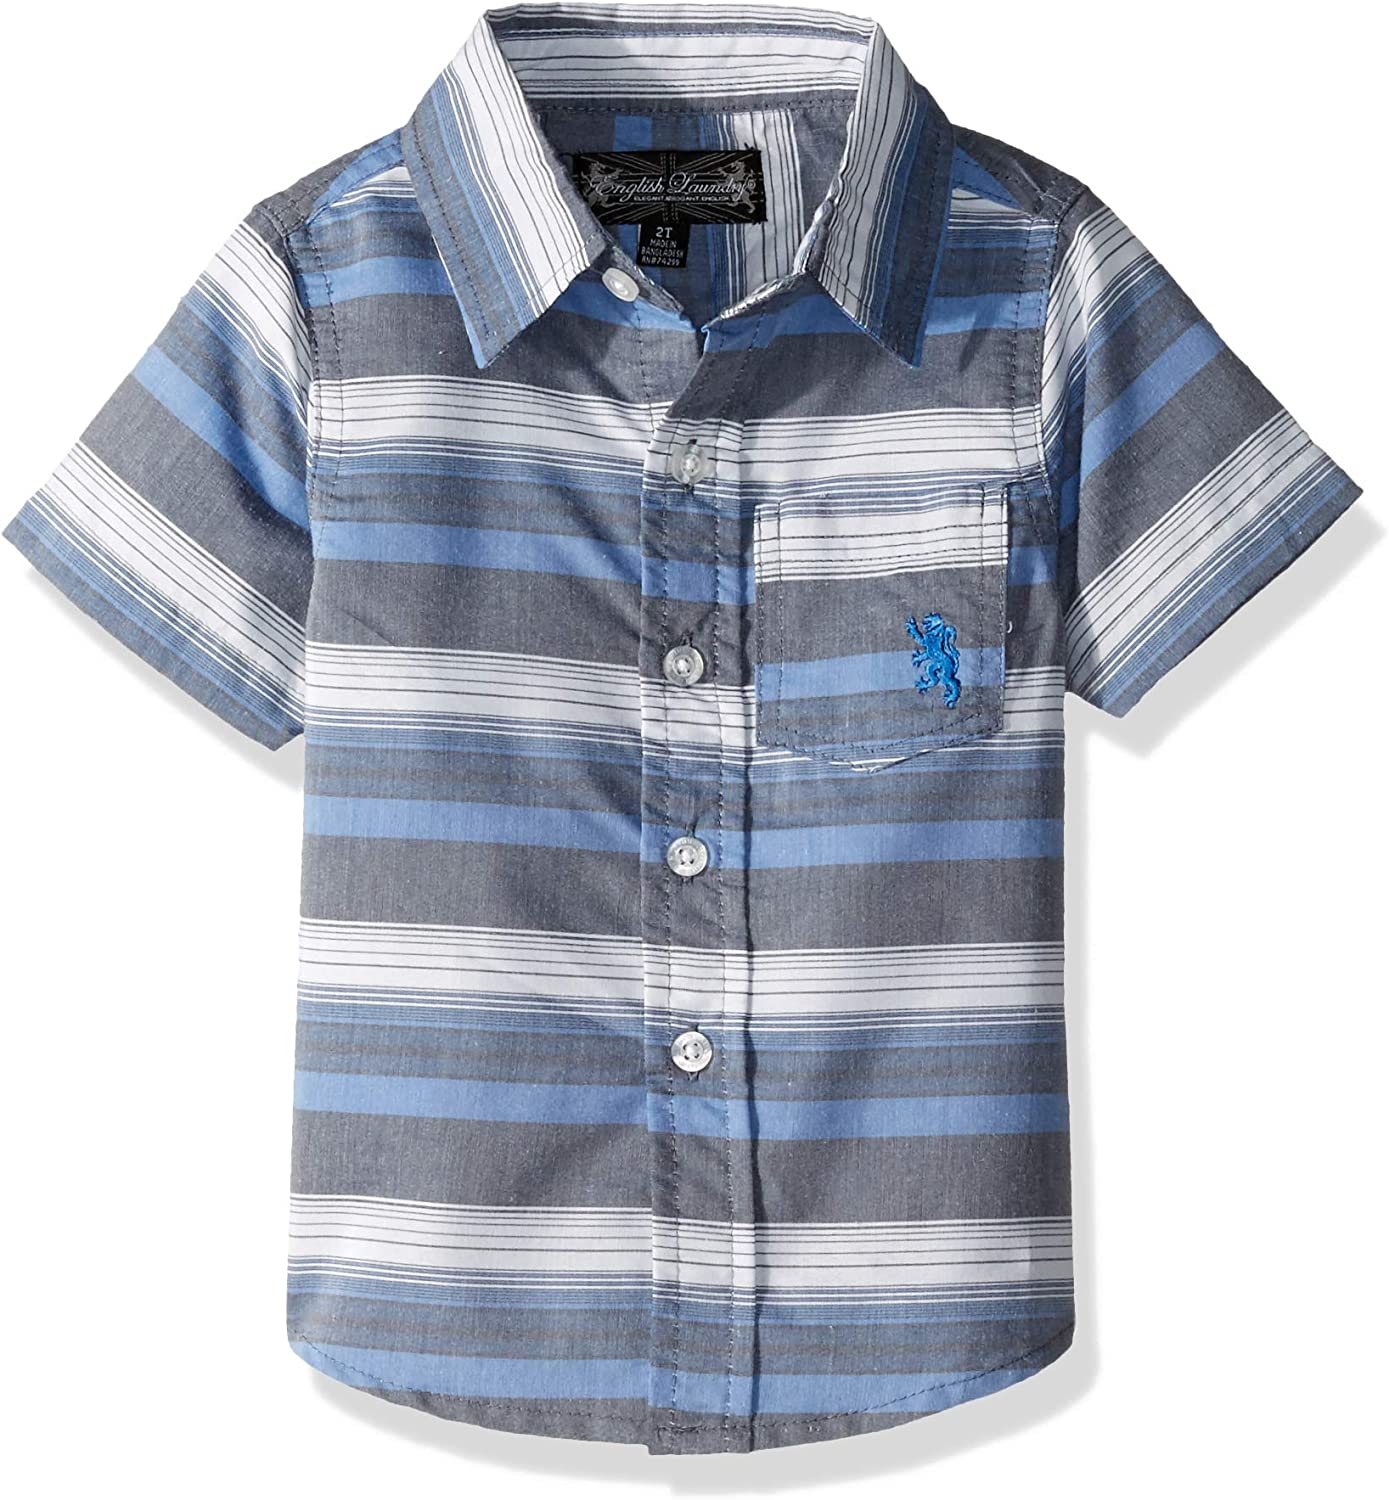 English Laundry Boys' Classic Short Sleeve Woven Shirt